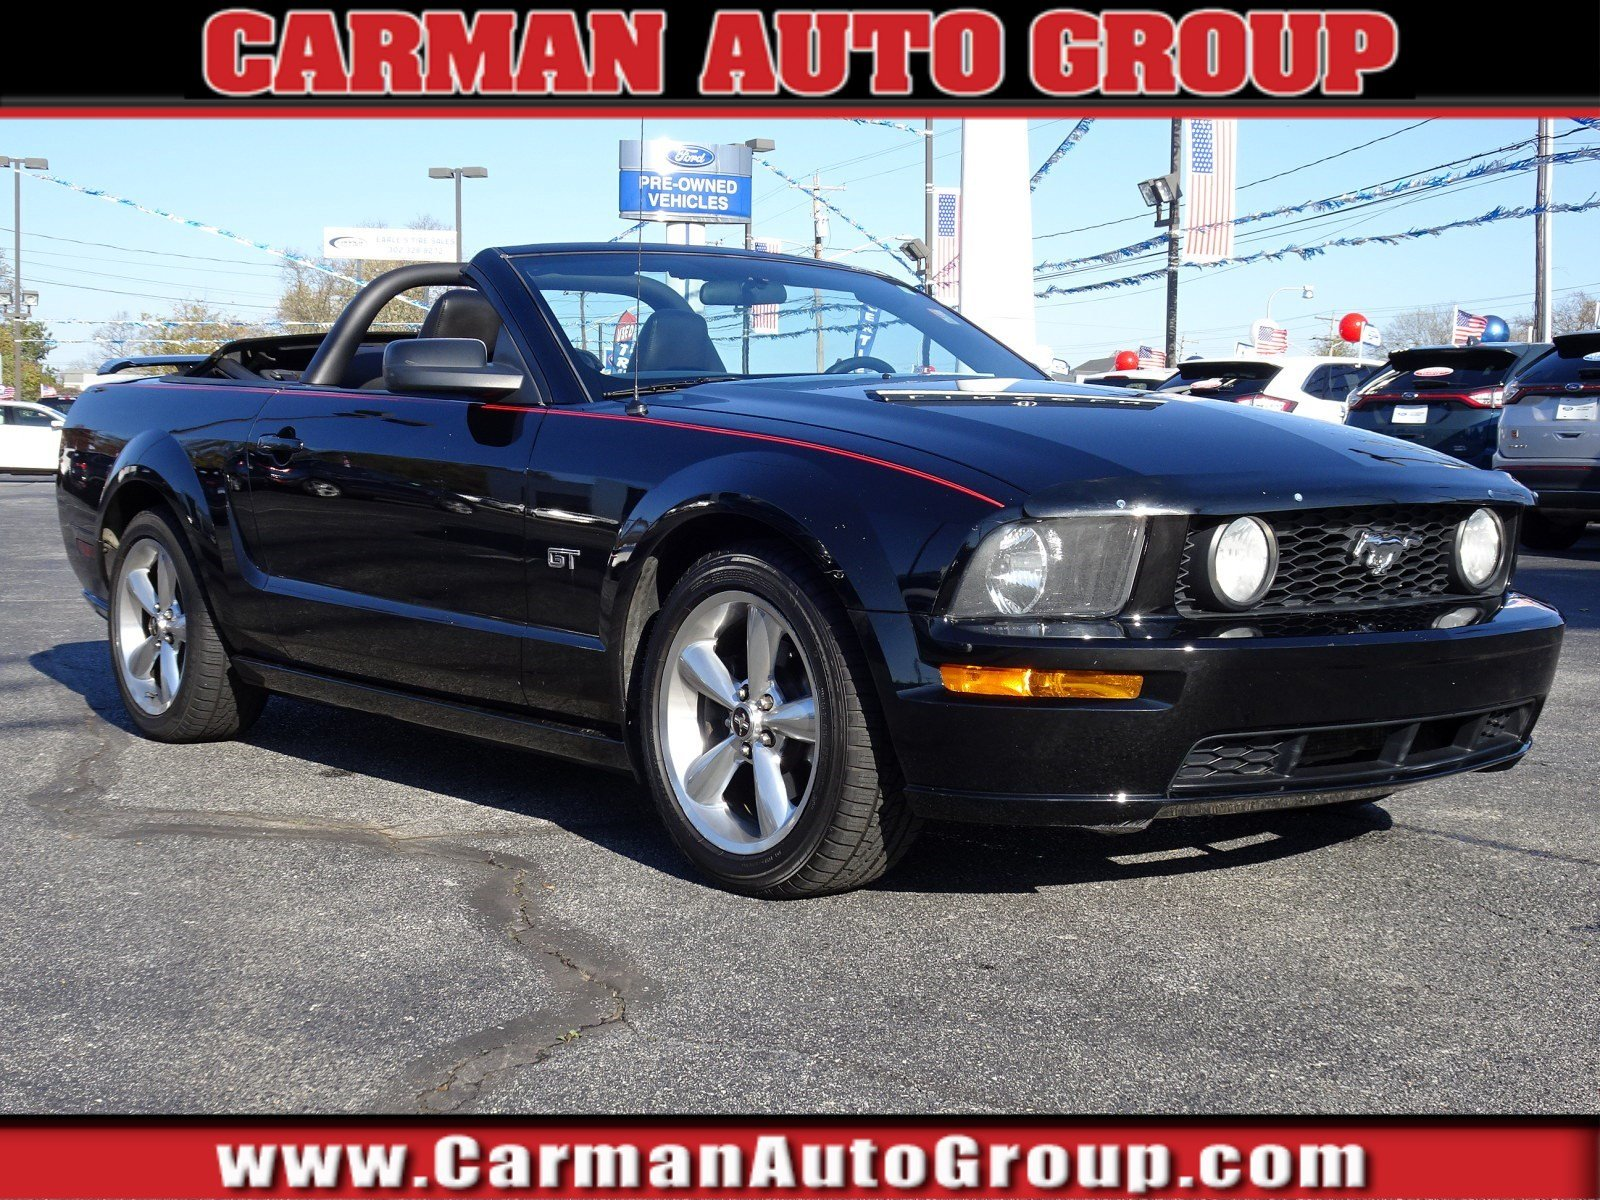 Used 2006 Ford Mustang For Sale